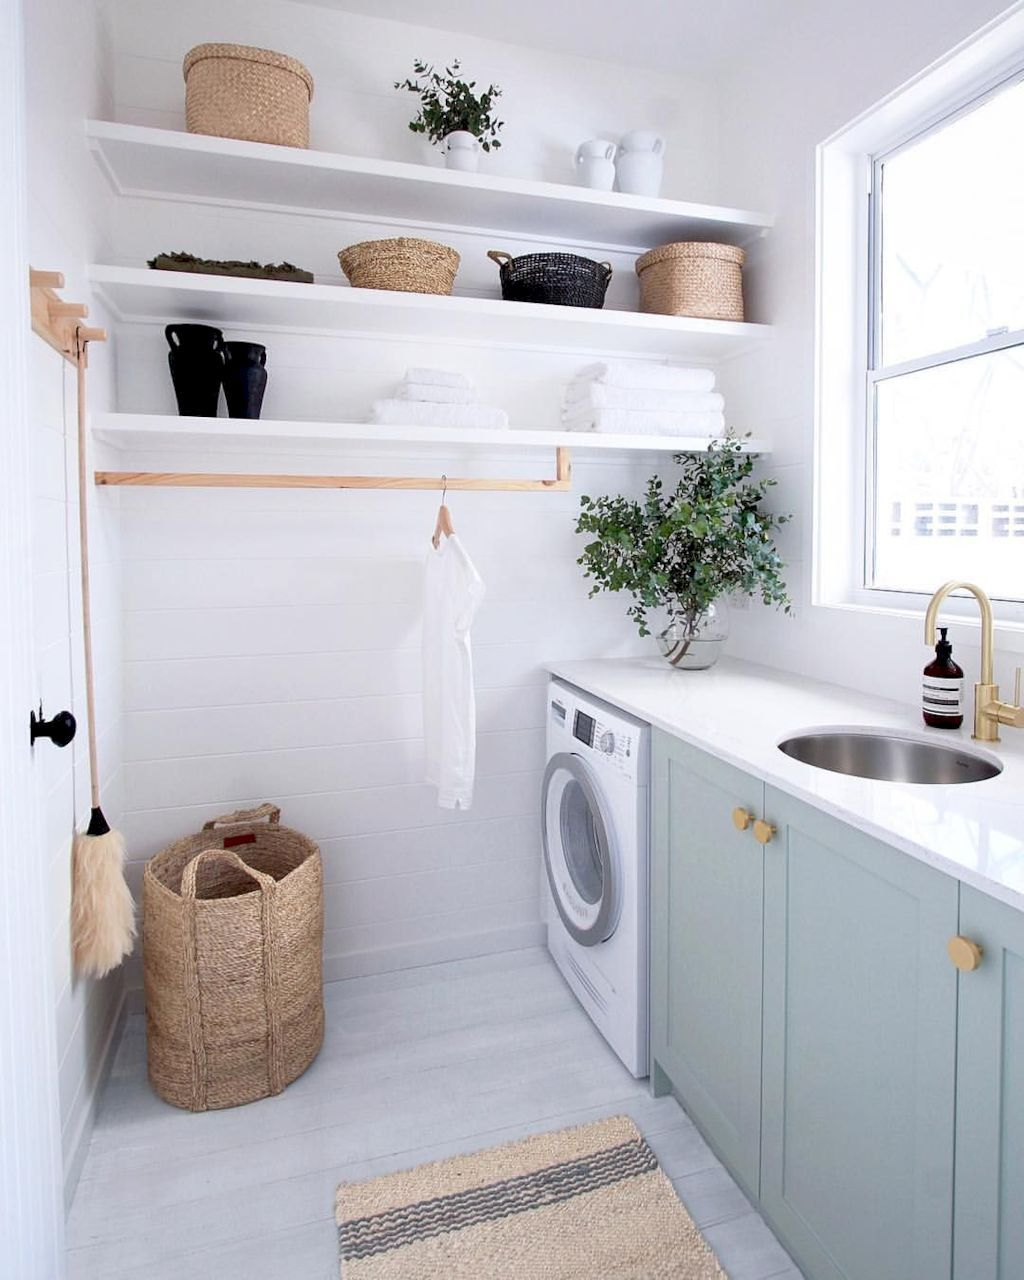 28 Modern Laundry Rooms Adopting Scandinavian Ideas Laundry Room Inspiration Laundry Room Design Laundry Room Makeover